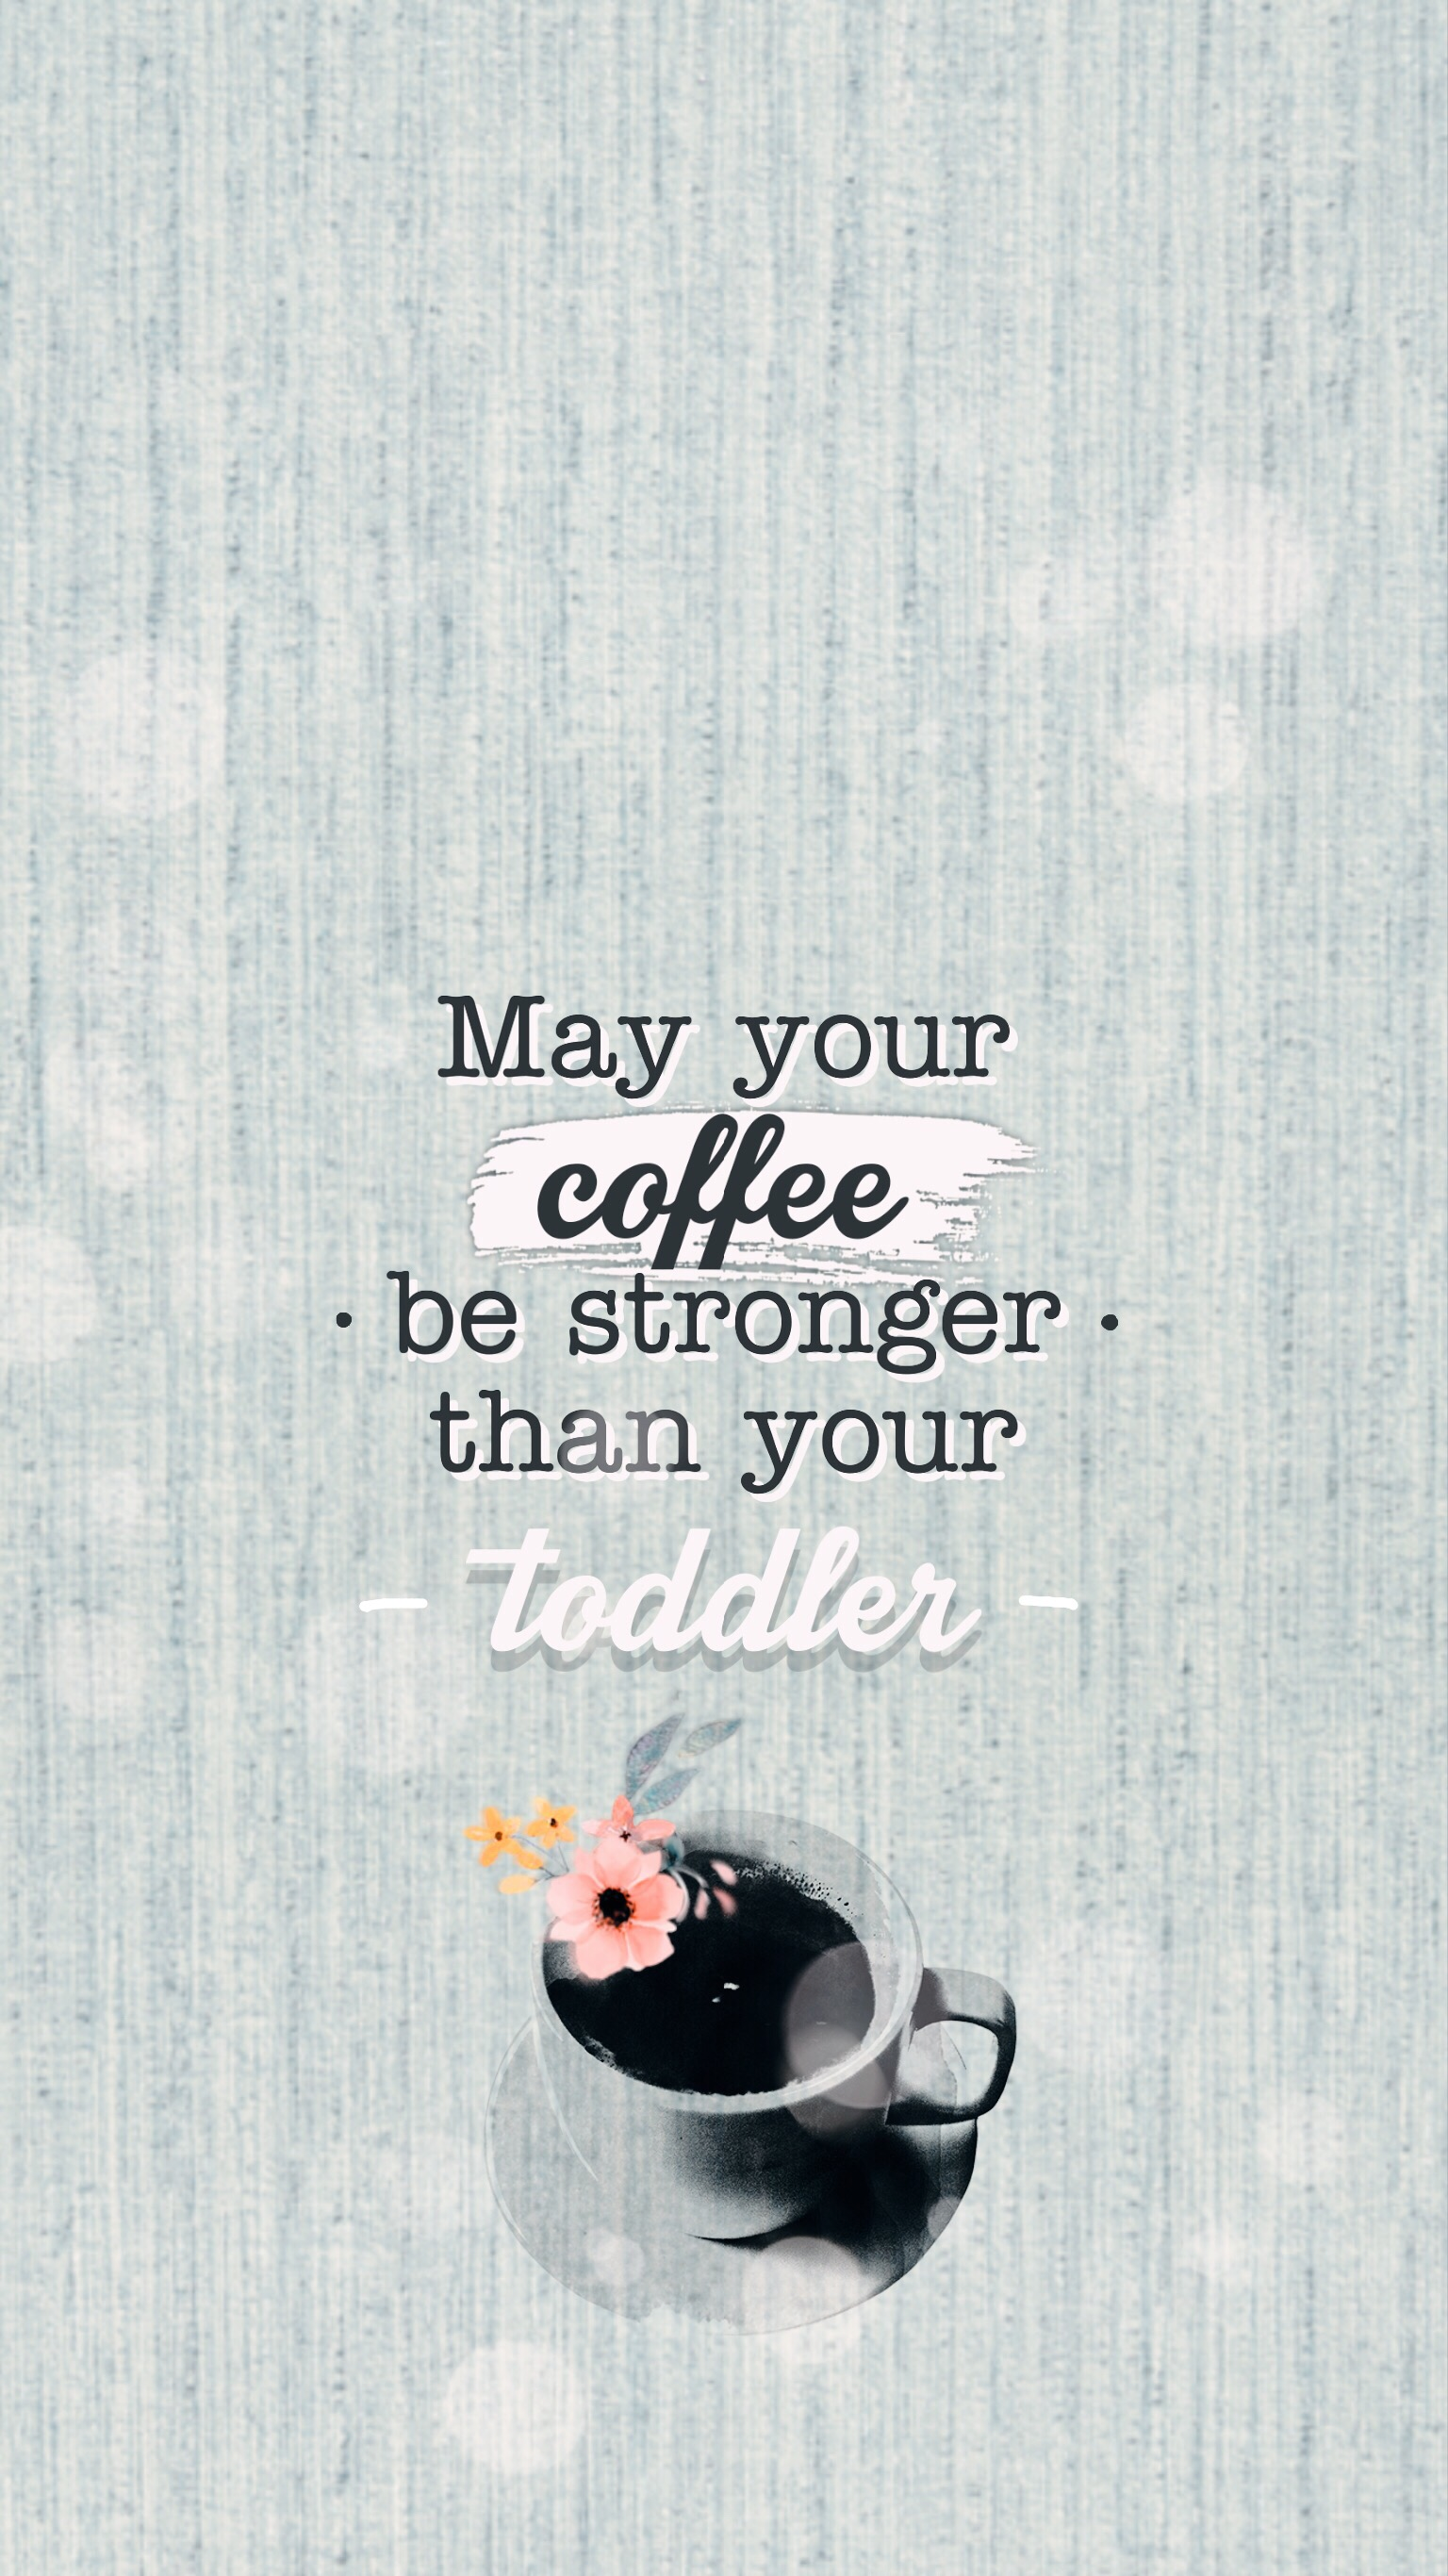 """Funny mom wallpaper: """"May your coffee be stronger than your toddler."""""""